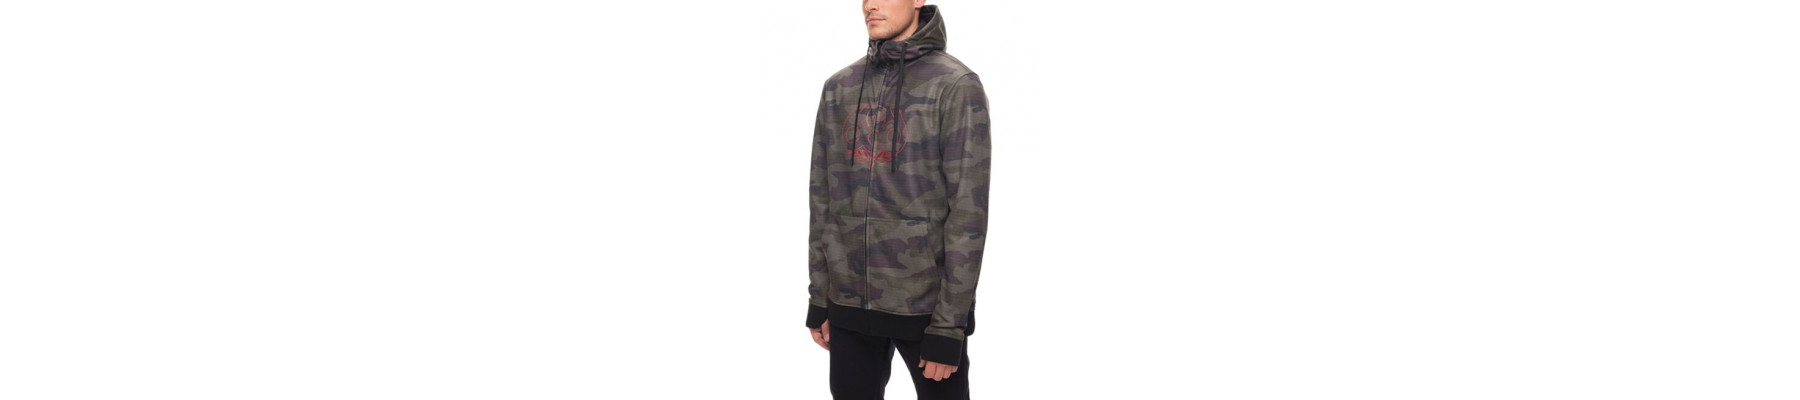 686 Icon Zip Bonded Fleece Hoody Faticue camo DRW